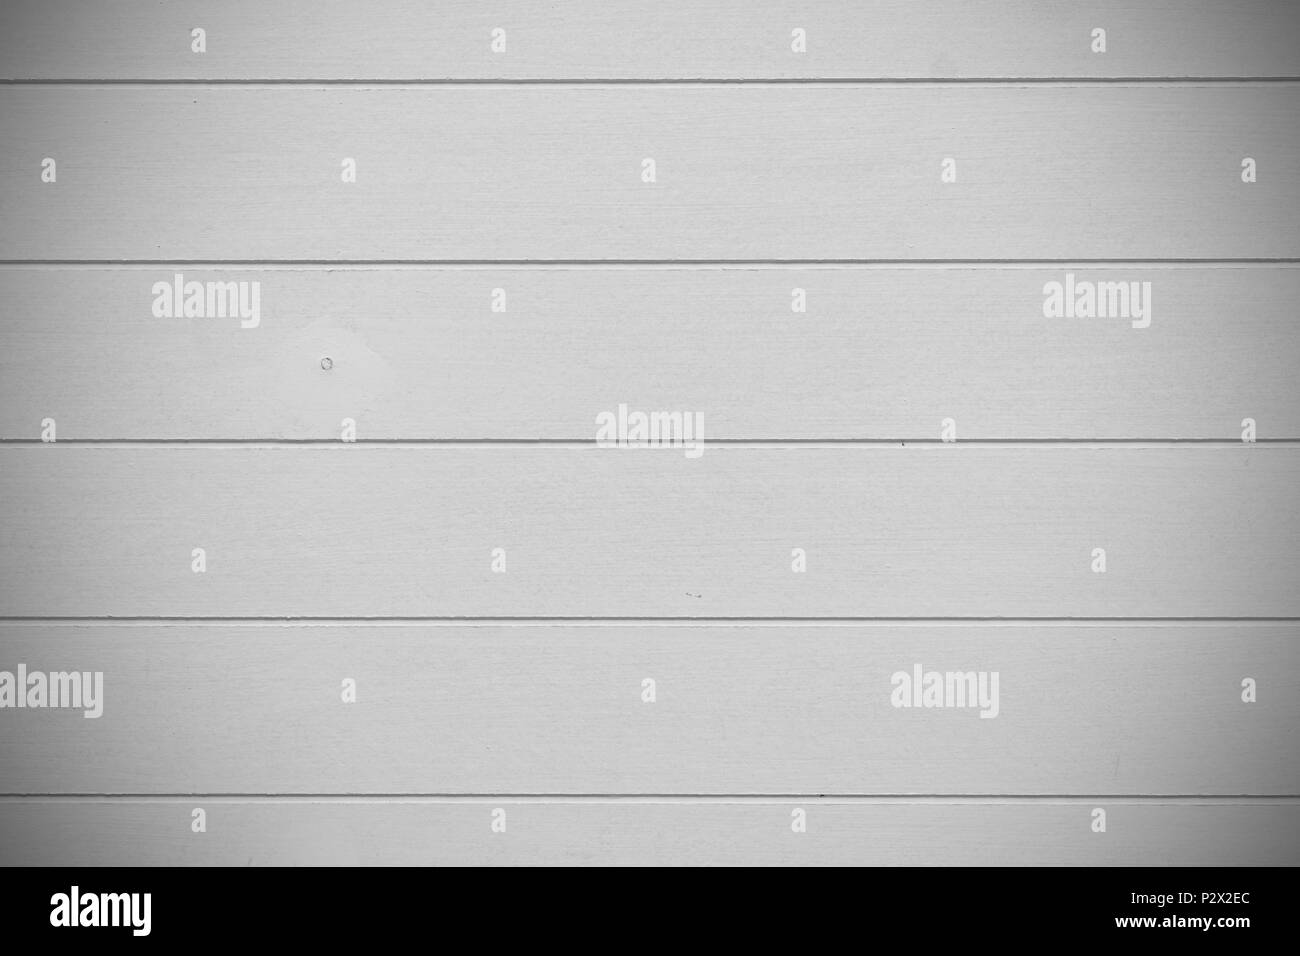 Detail white wood board texture, image is horizontal abstract pattern background, effect light. - Stock Image